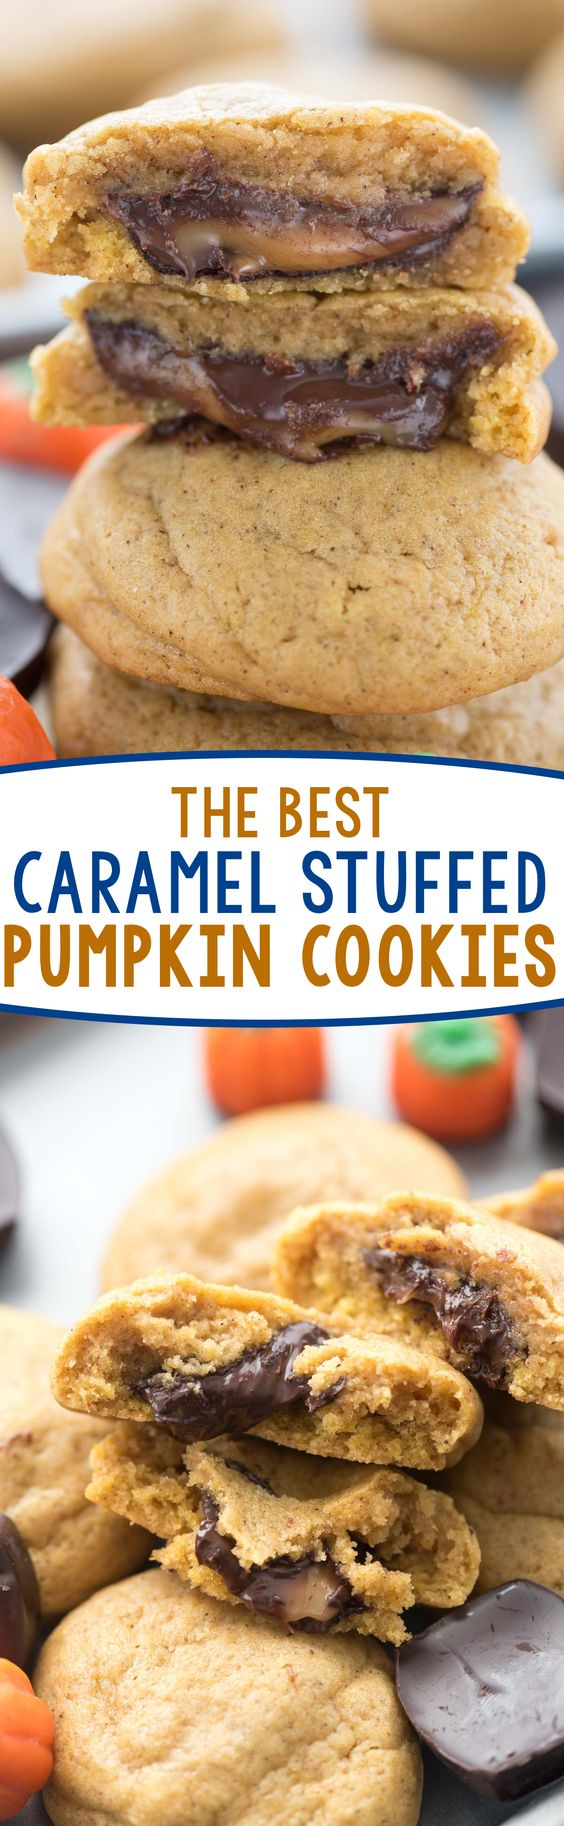 Caramel Stuffed Pumpkin Cookies - this is the BEST Pumpkin Cookie recipe stuffed with chocolate caramel candies!